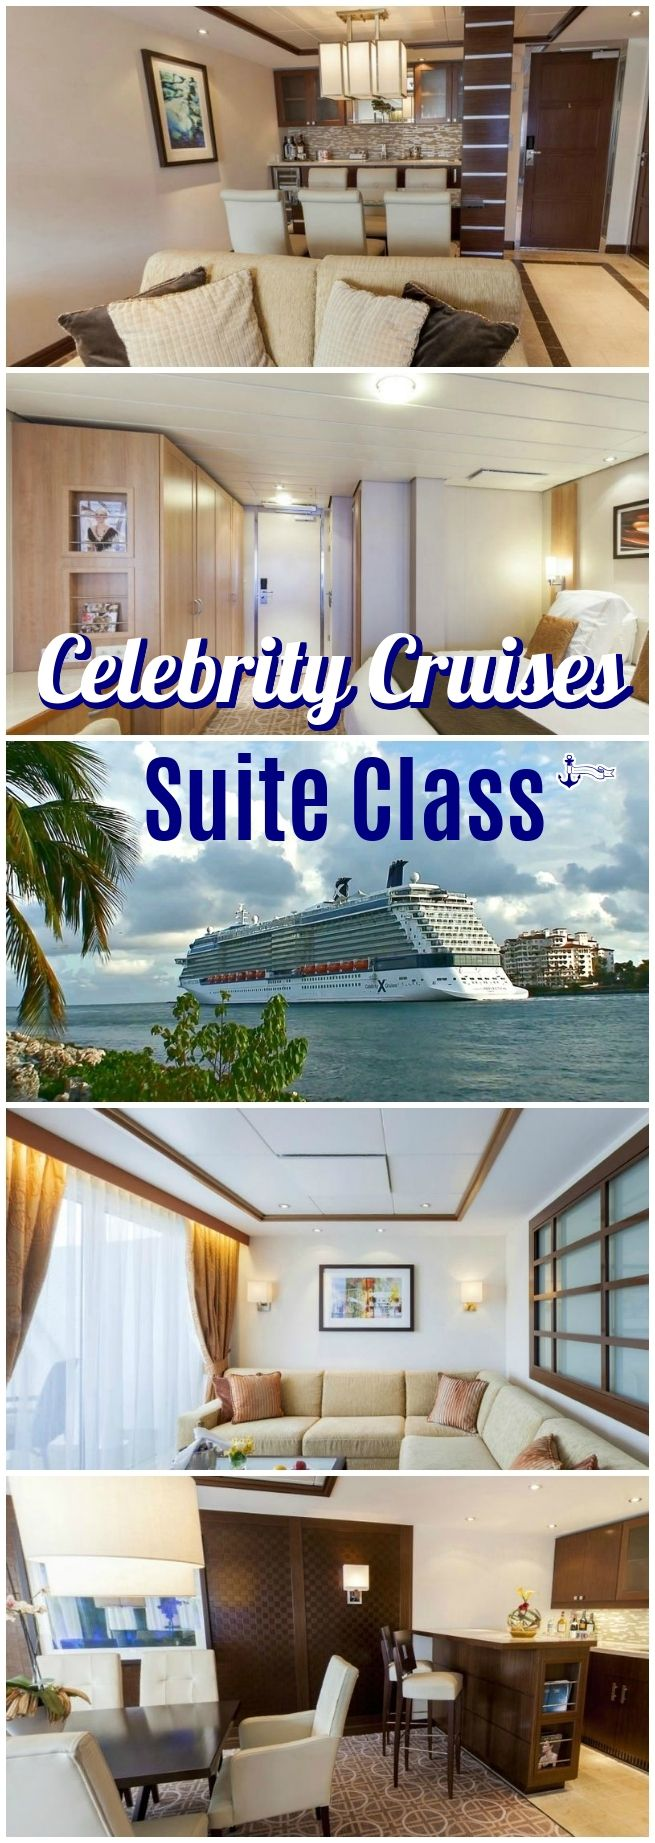 Introducing the new Suite Class from Celebrity Cruises ...